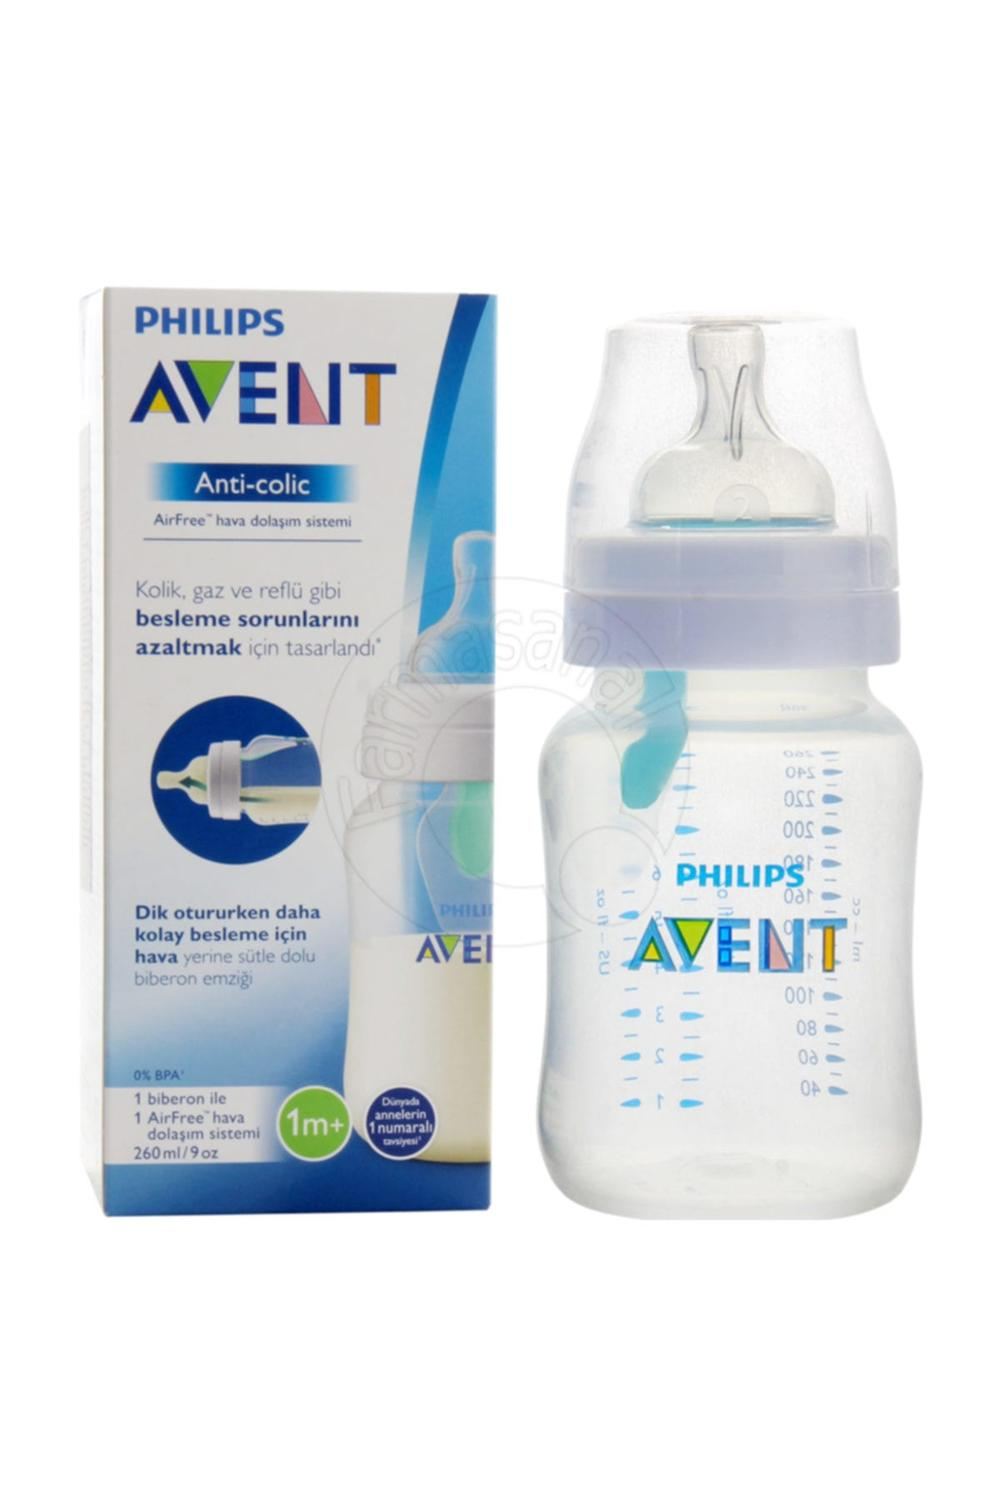 Philips Avent Classic Baby Feeding Bottle 9oz 260ml 1m